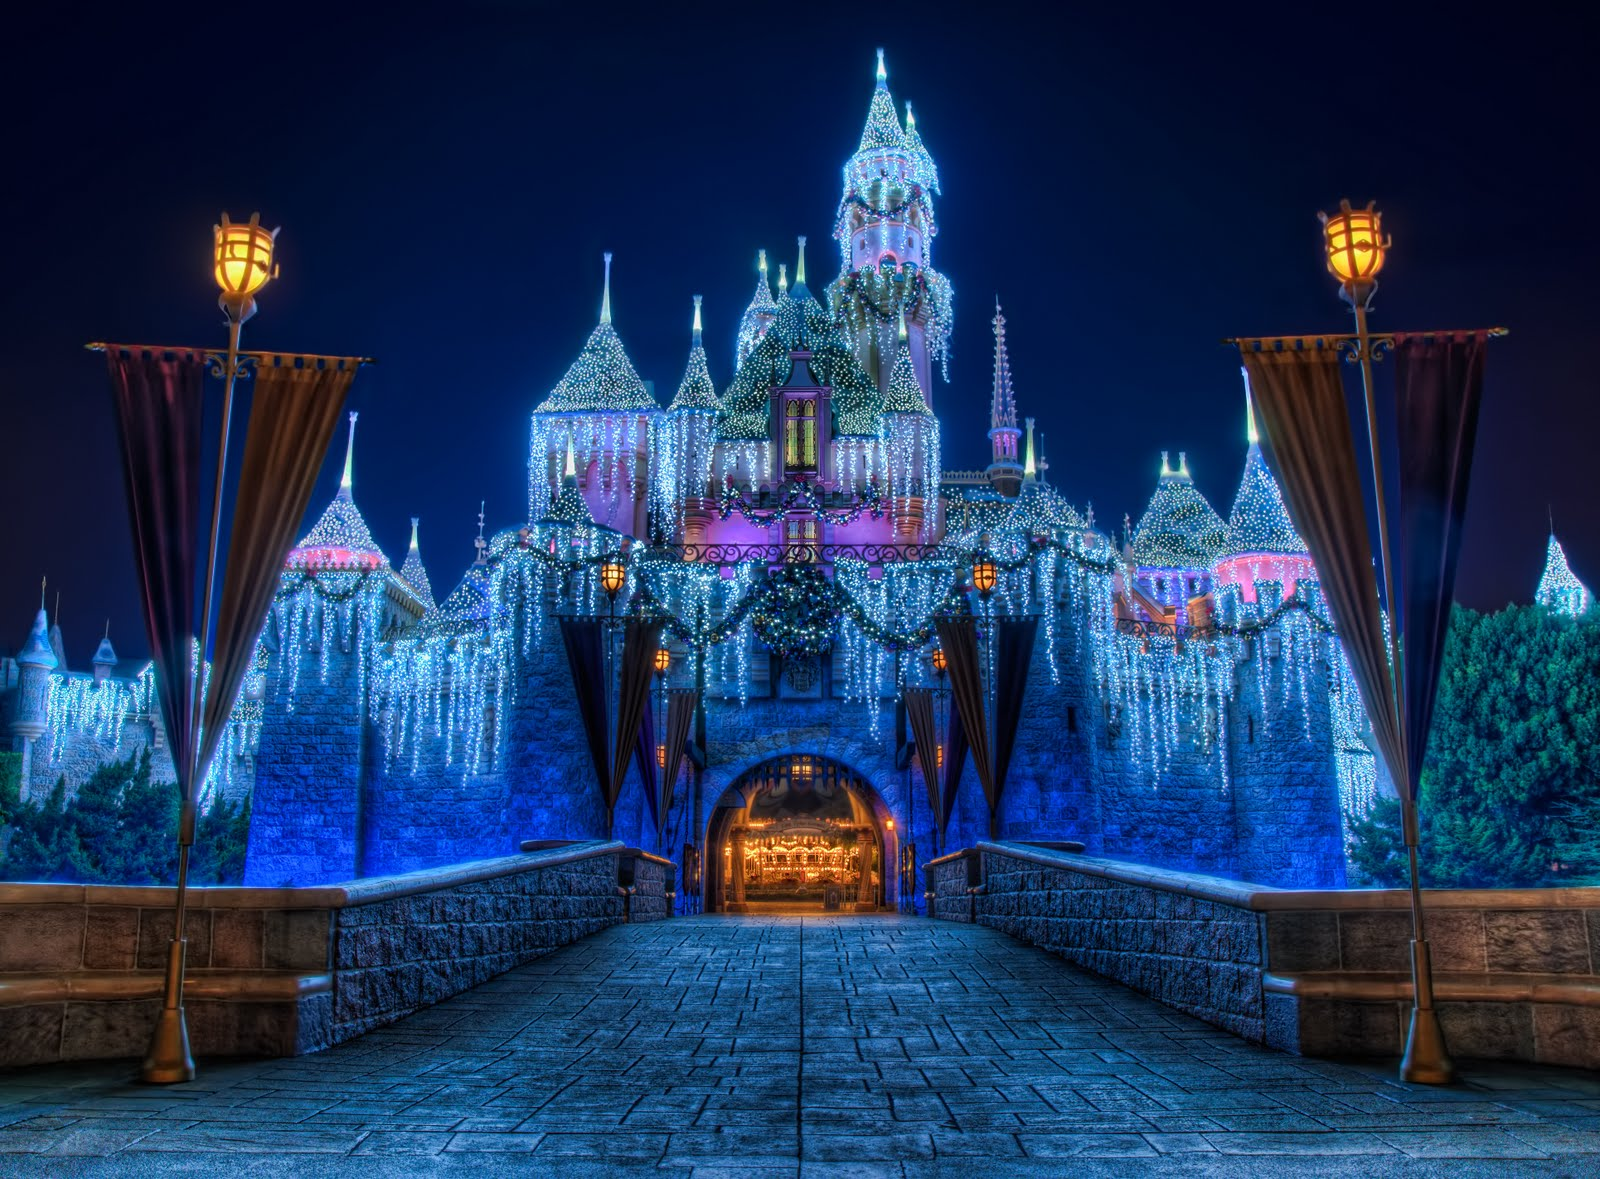 wallpaper Disney Castle Backgrounds hd wallpaper background desktop 1600x1179